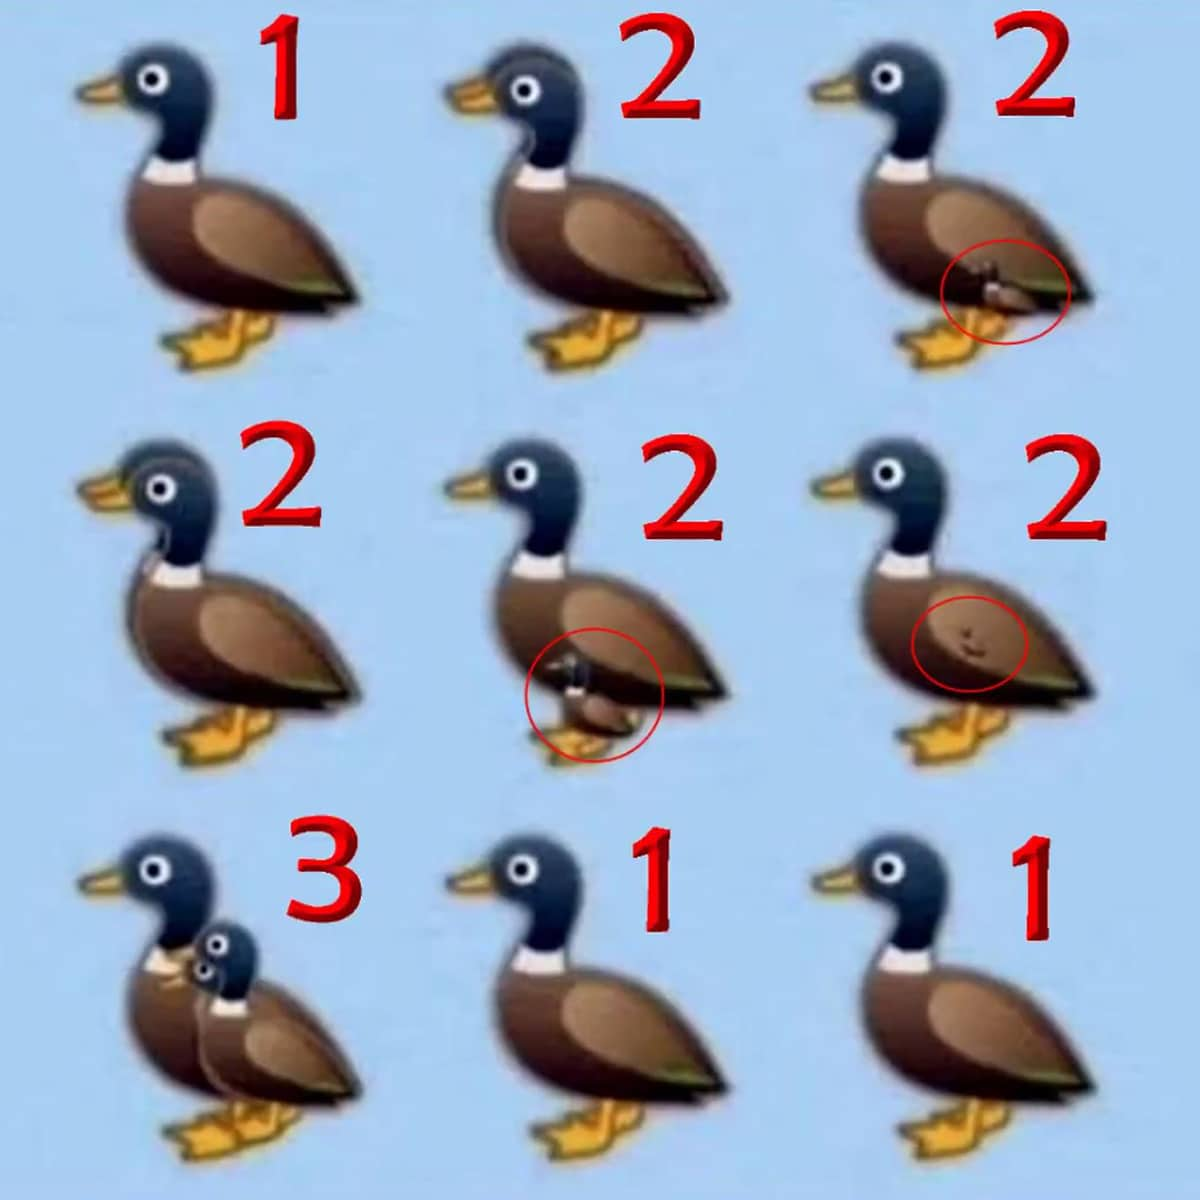 The answer to the riddle: How many ducks do you see?